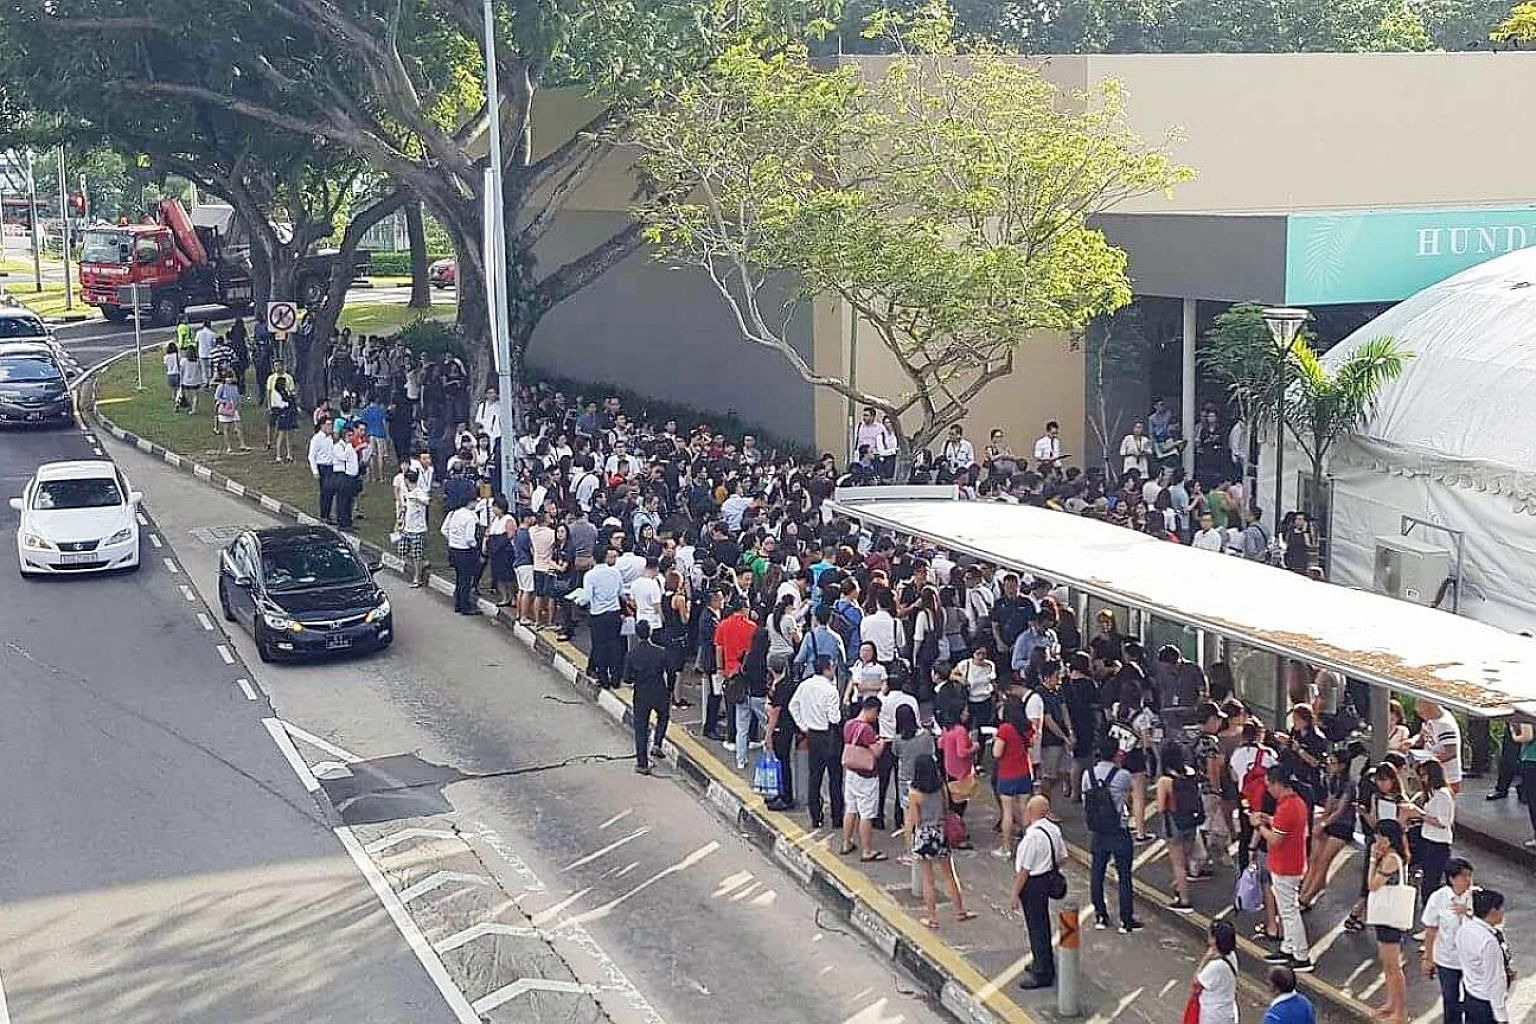 The turnout at the launch of the Hundred Palms Residences executive condominium in Yio Chu Kang Road on July 22. All 531 units were sold that day at a median price of $834 per sq ft.